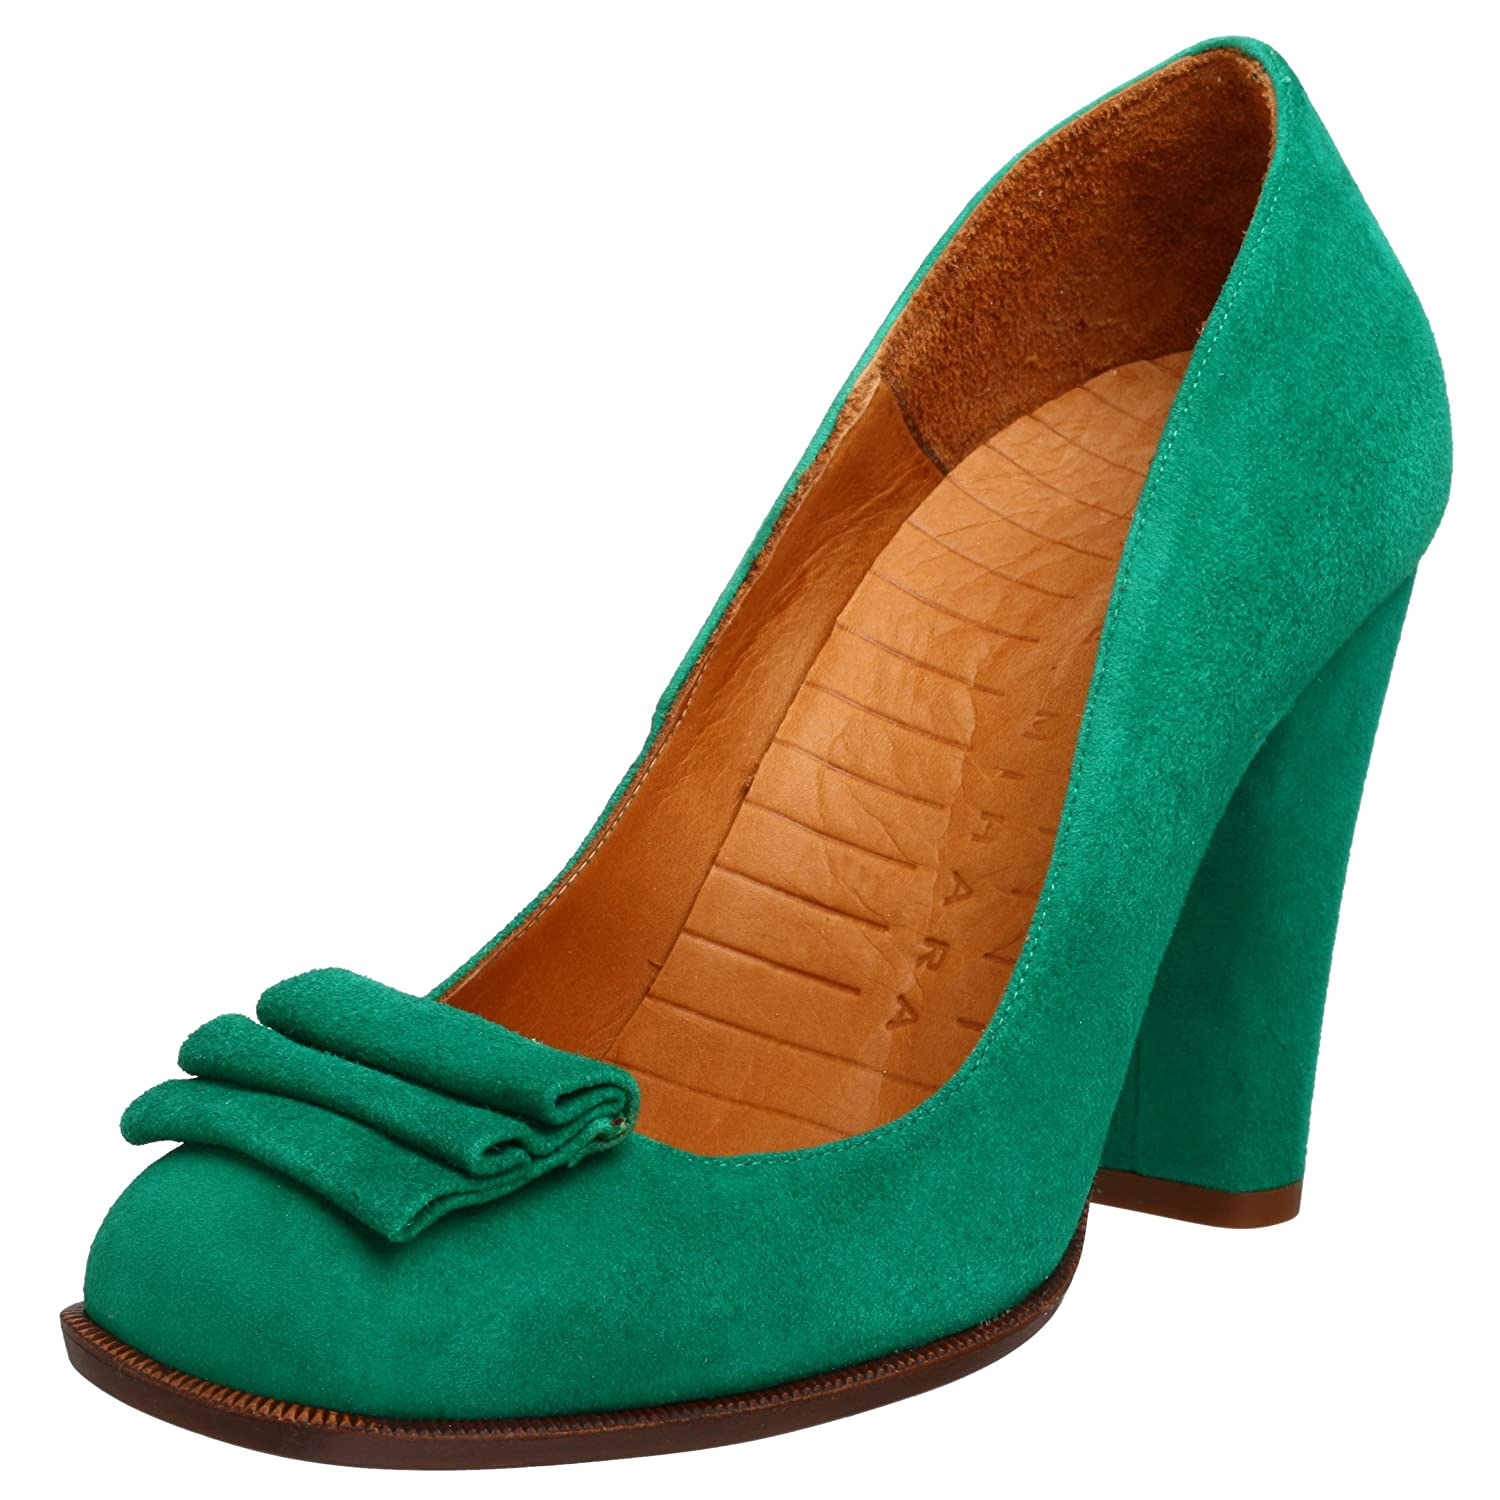 Chie Mihara Women's Lasga Pump - Free Overnight Shipping & Return Shipping: Endless.com from endless.com